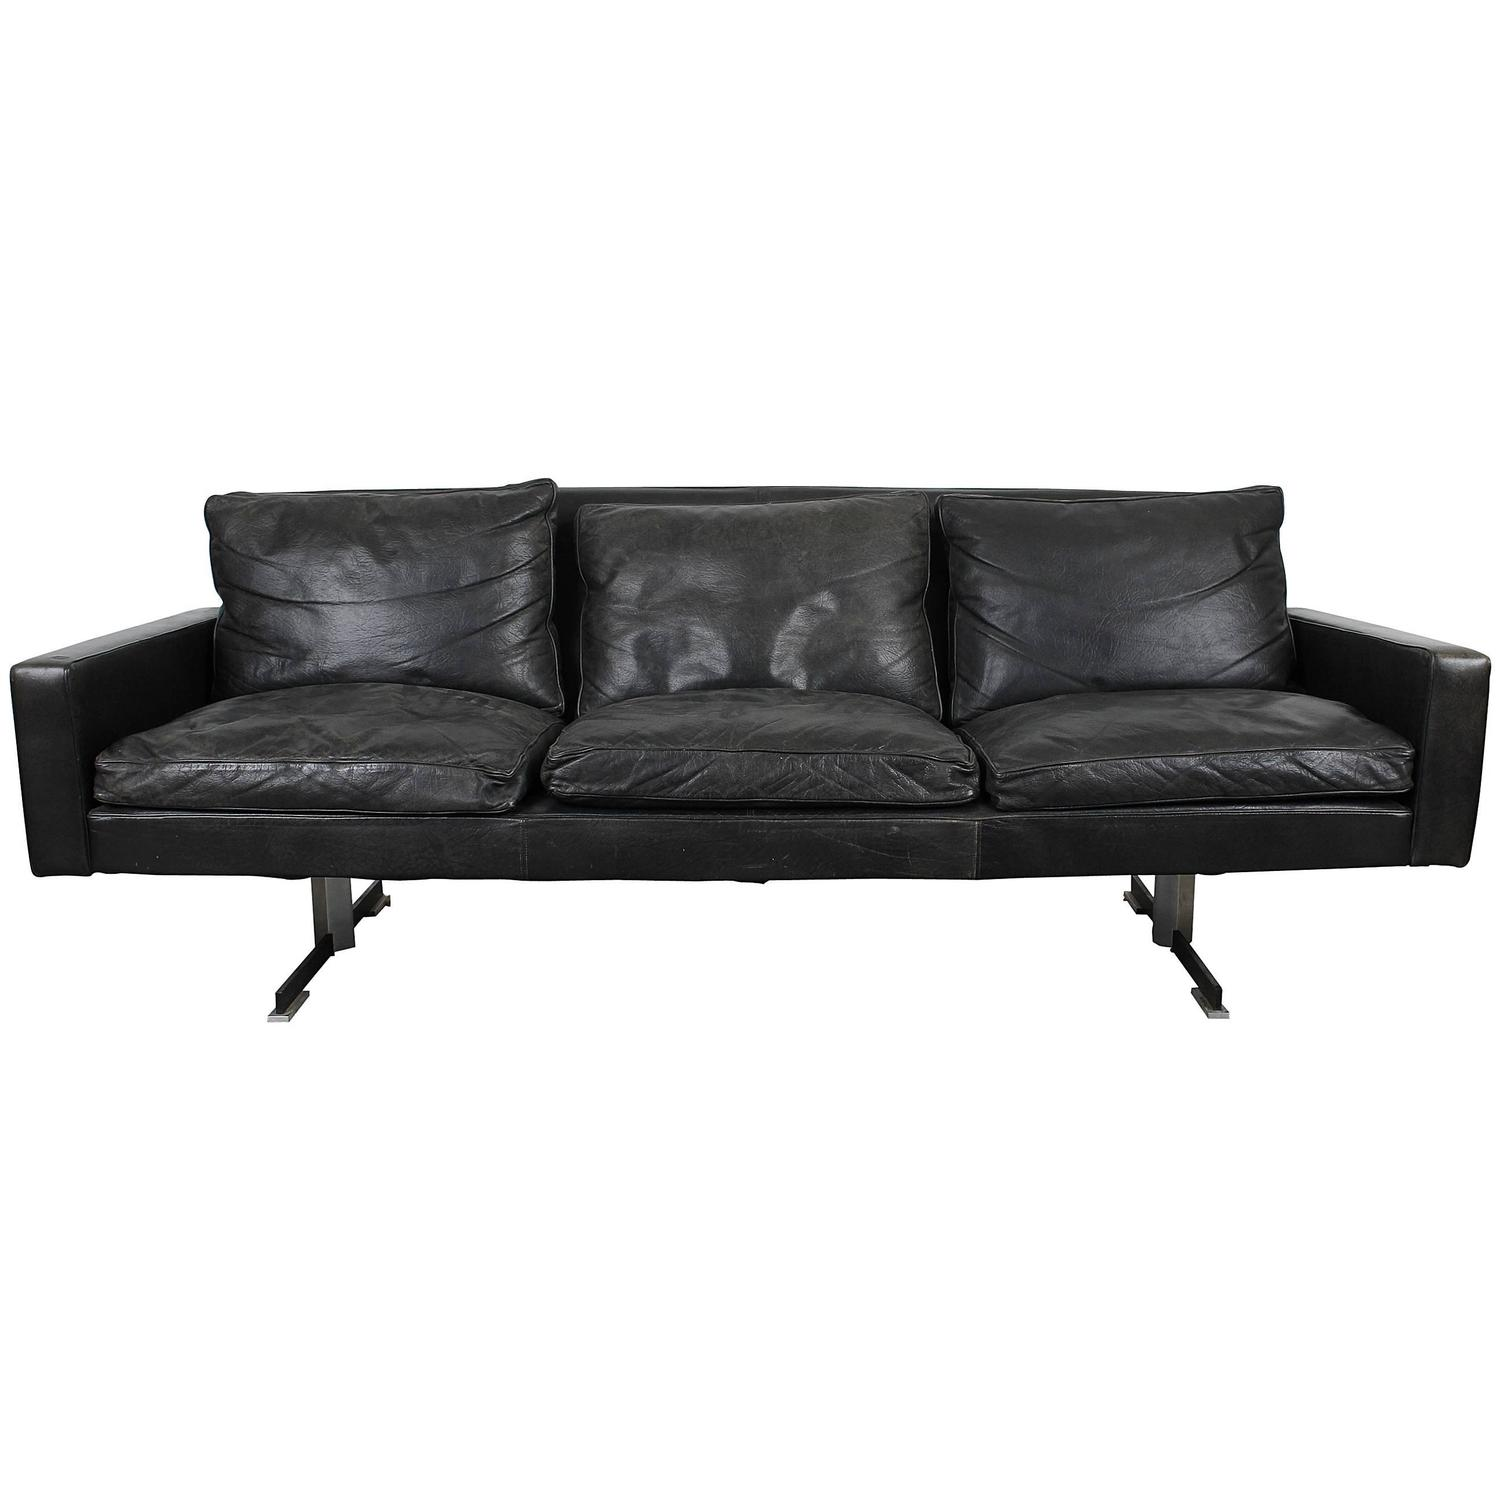 . midcentury modern black leather sofa with chrome legs at stdibs